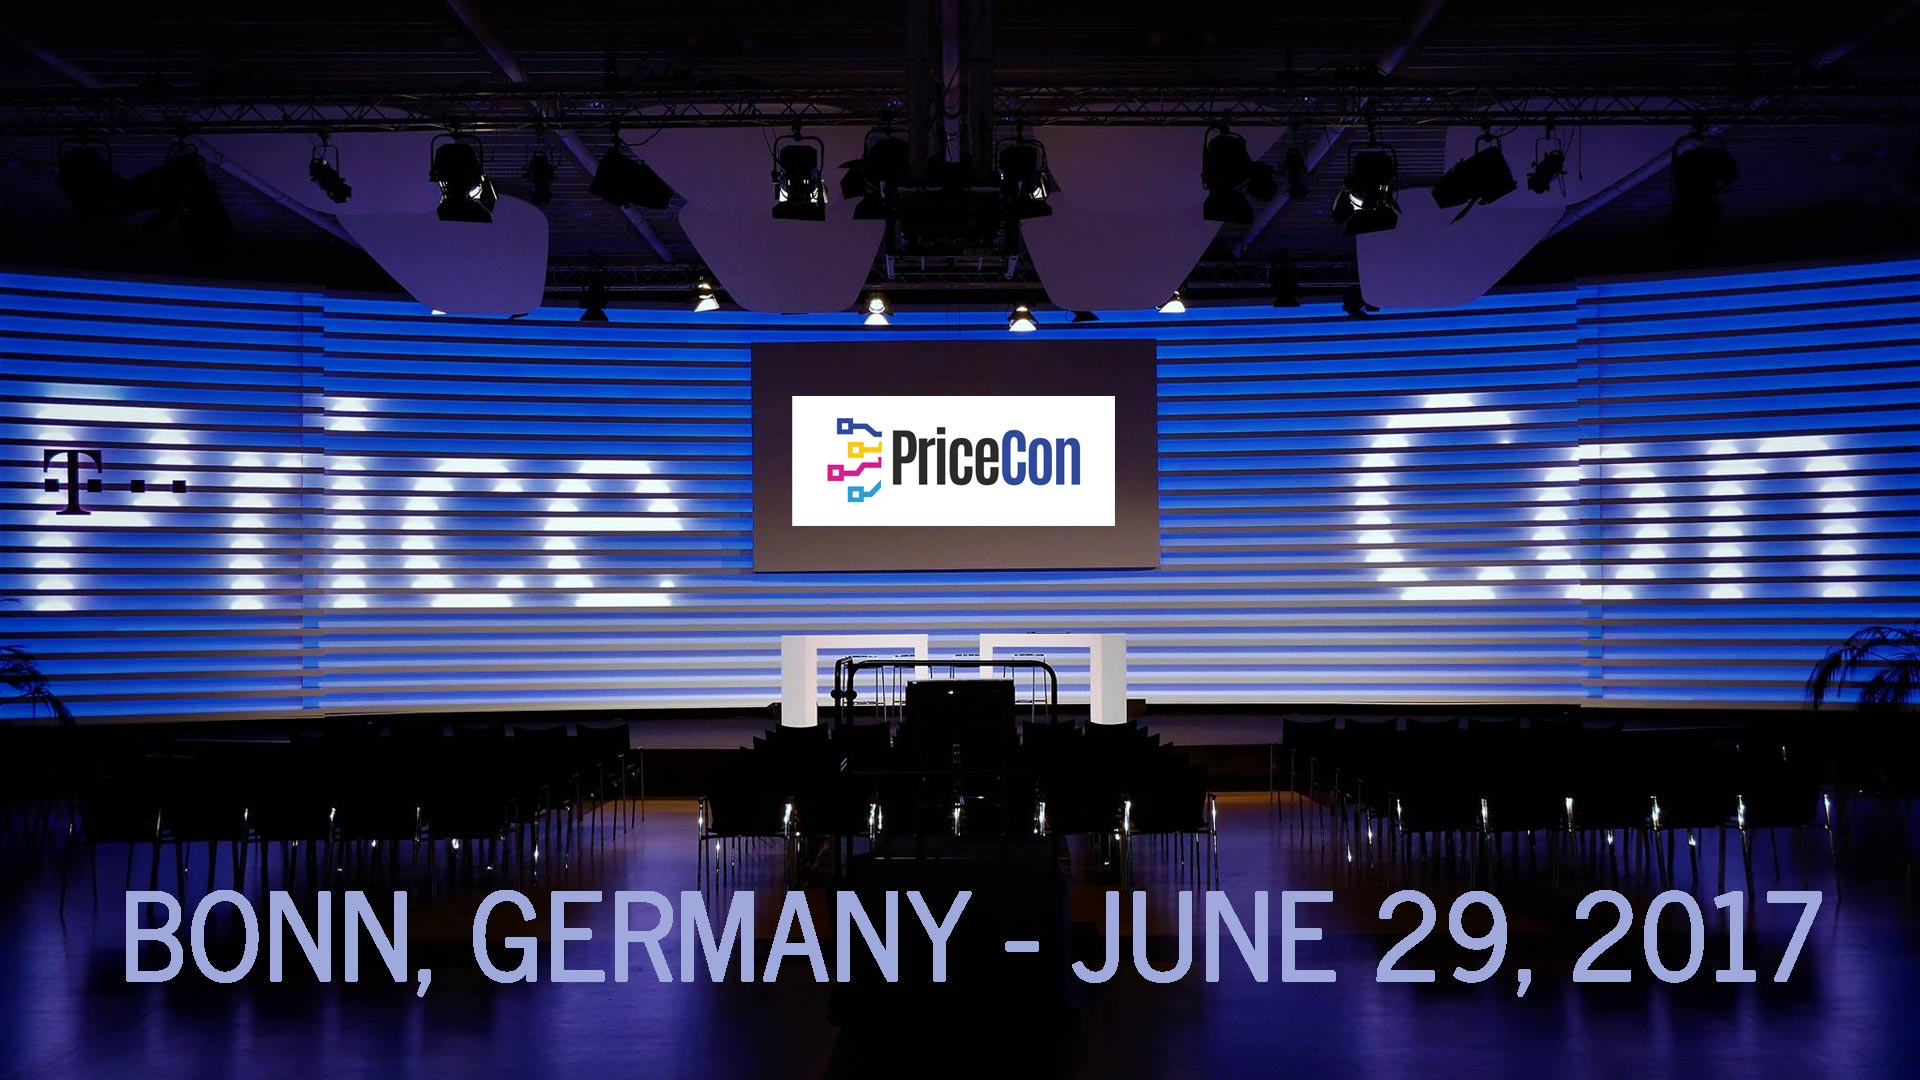 Startup Conference PriceCon Bonn Germany June 29